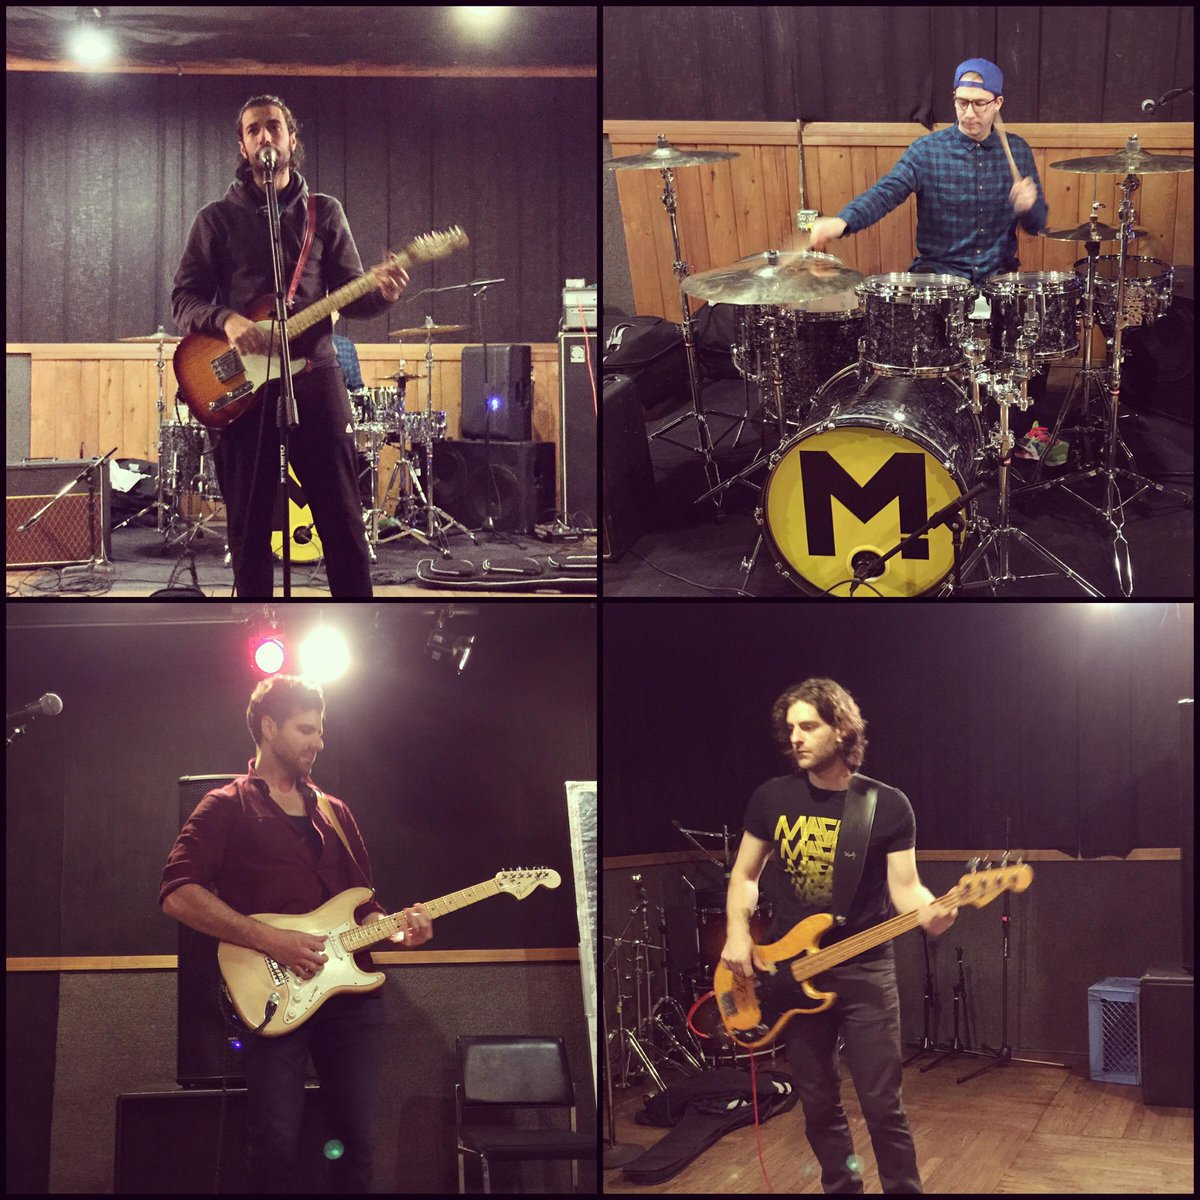 """MAGIC! on Twitter: """"#ournameismagic :) http://t.co/7EVr28fg3T"""""""